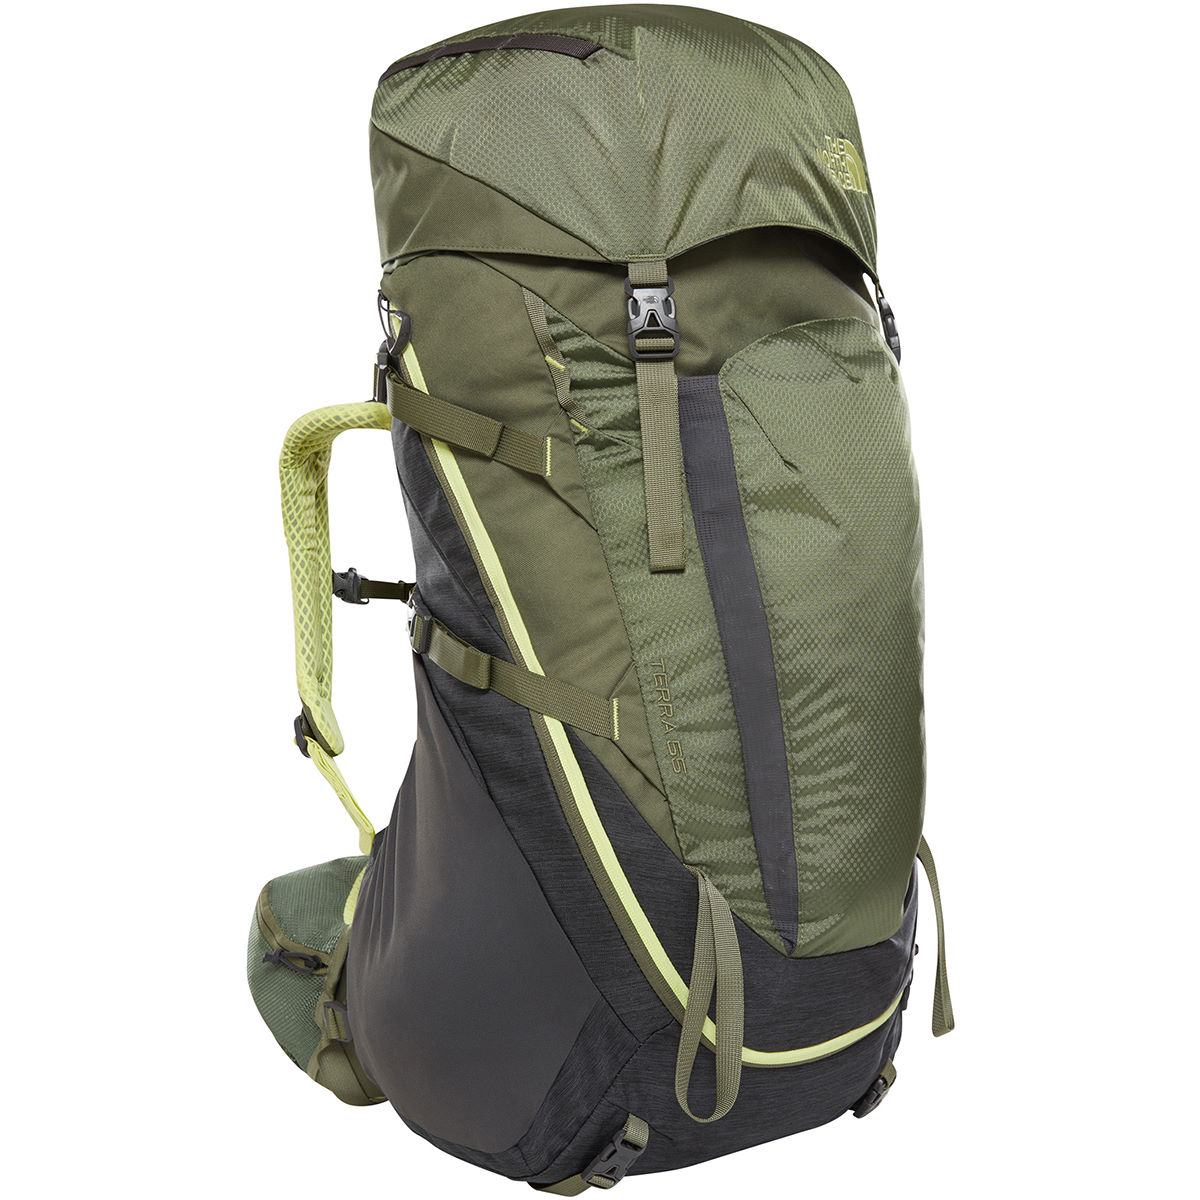 The North Face The North Face Womens Terra 55 Backpack   Hiking Bags